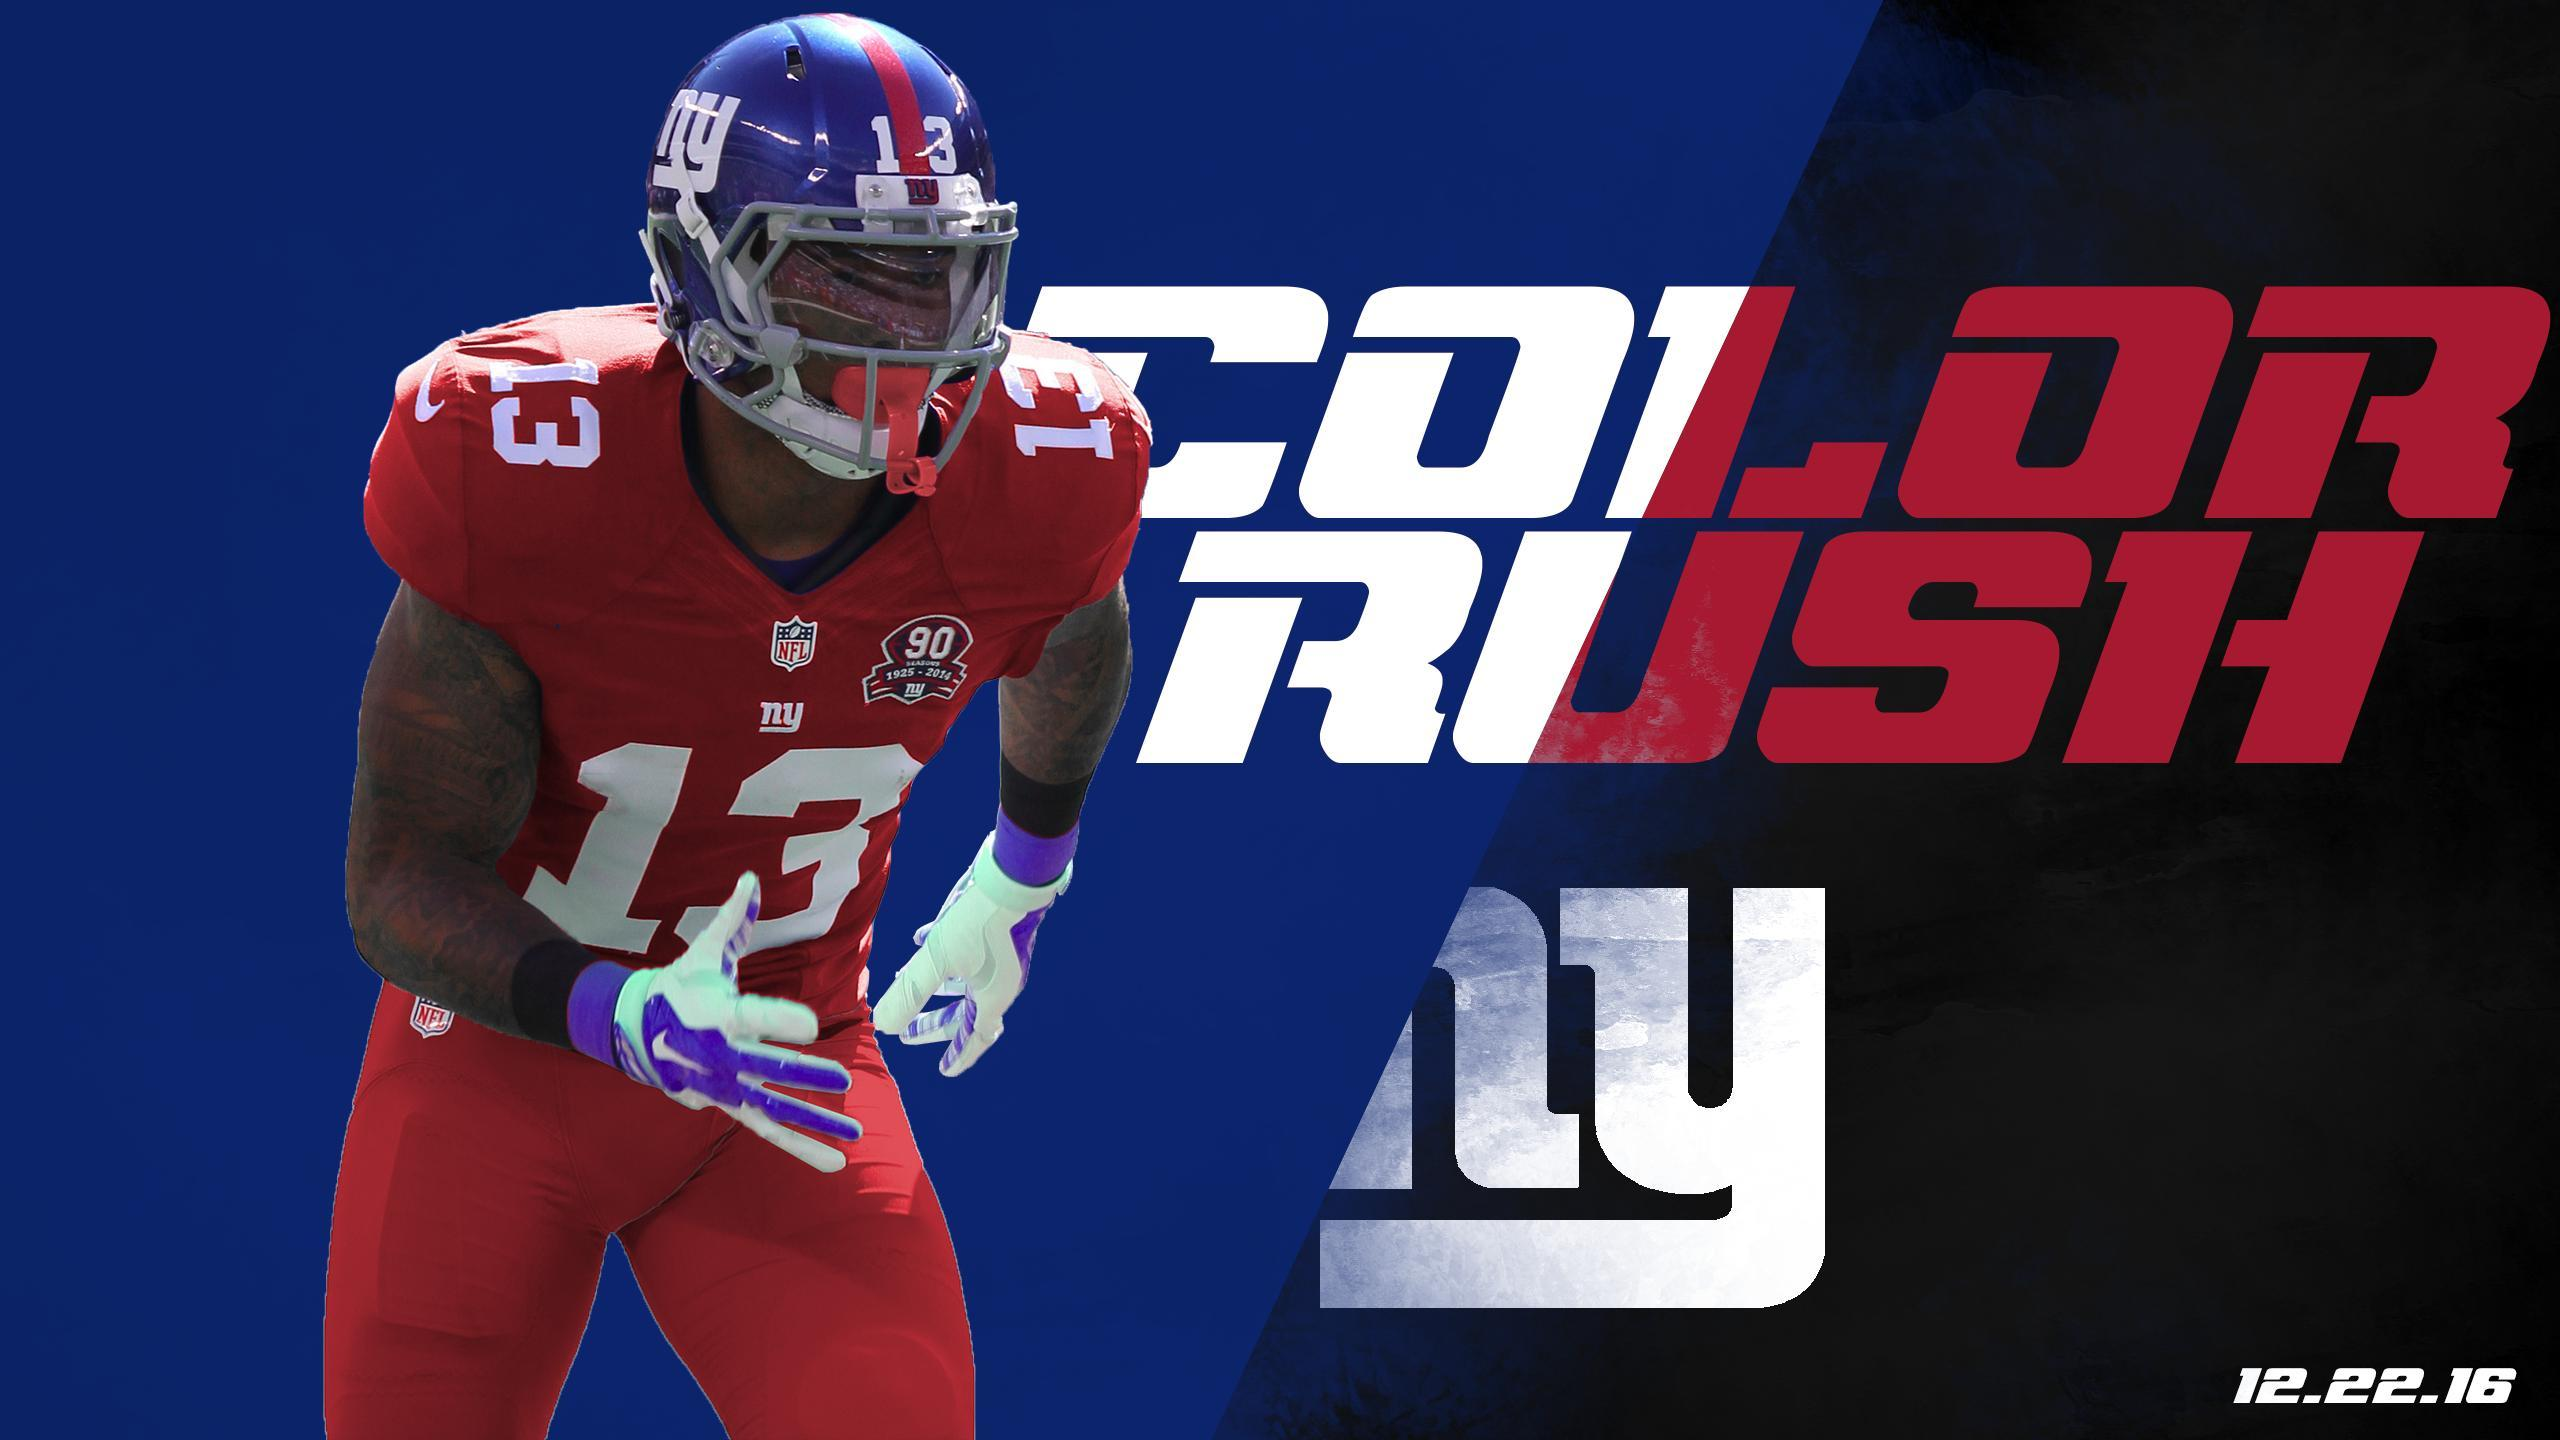 ed8b1f9b3 FREE ODELL BECKHAM JR COLOR RUSH WALLPAPER - Graphics - Off Topic .